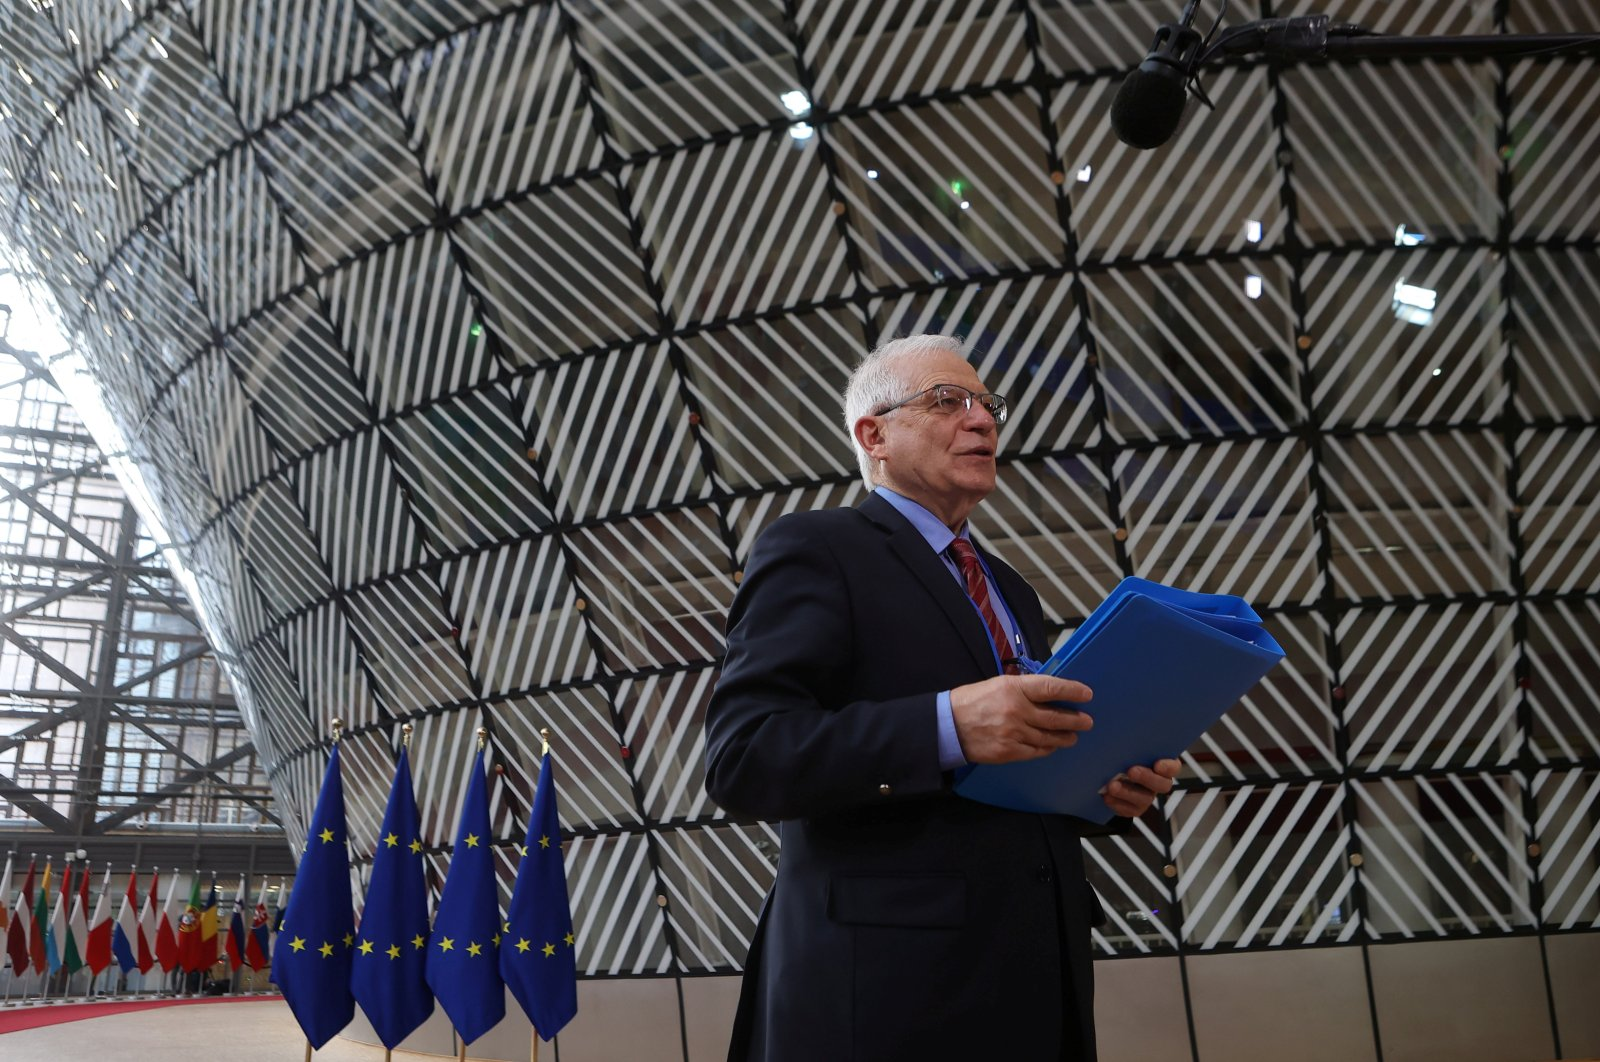 European Union Minister for Foreign Affairs Josep Borrell speaks to media prior to an EU foreign ministers meeting in Brussels, Belgium, March 22, 2021. (Reuters Photo)